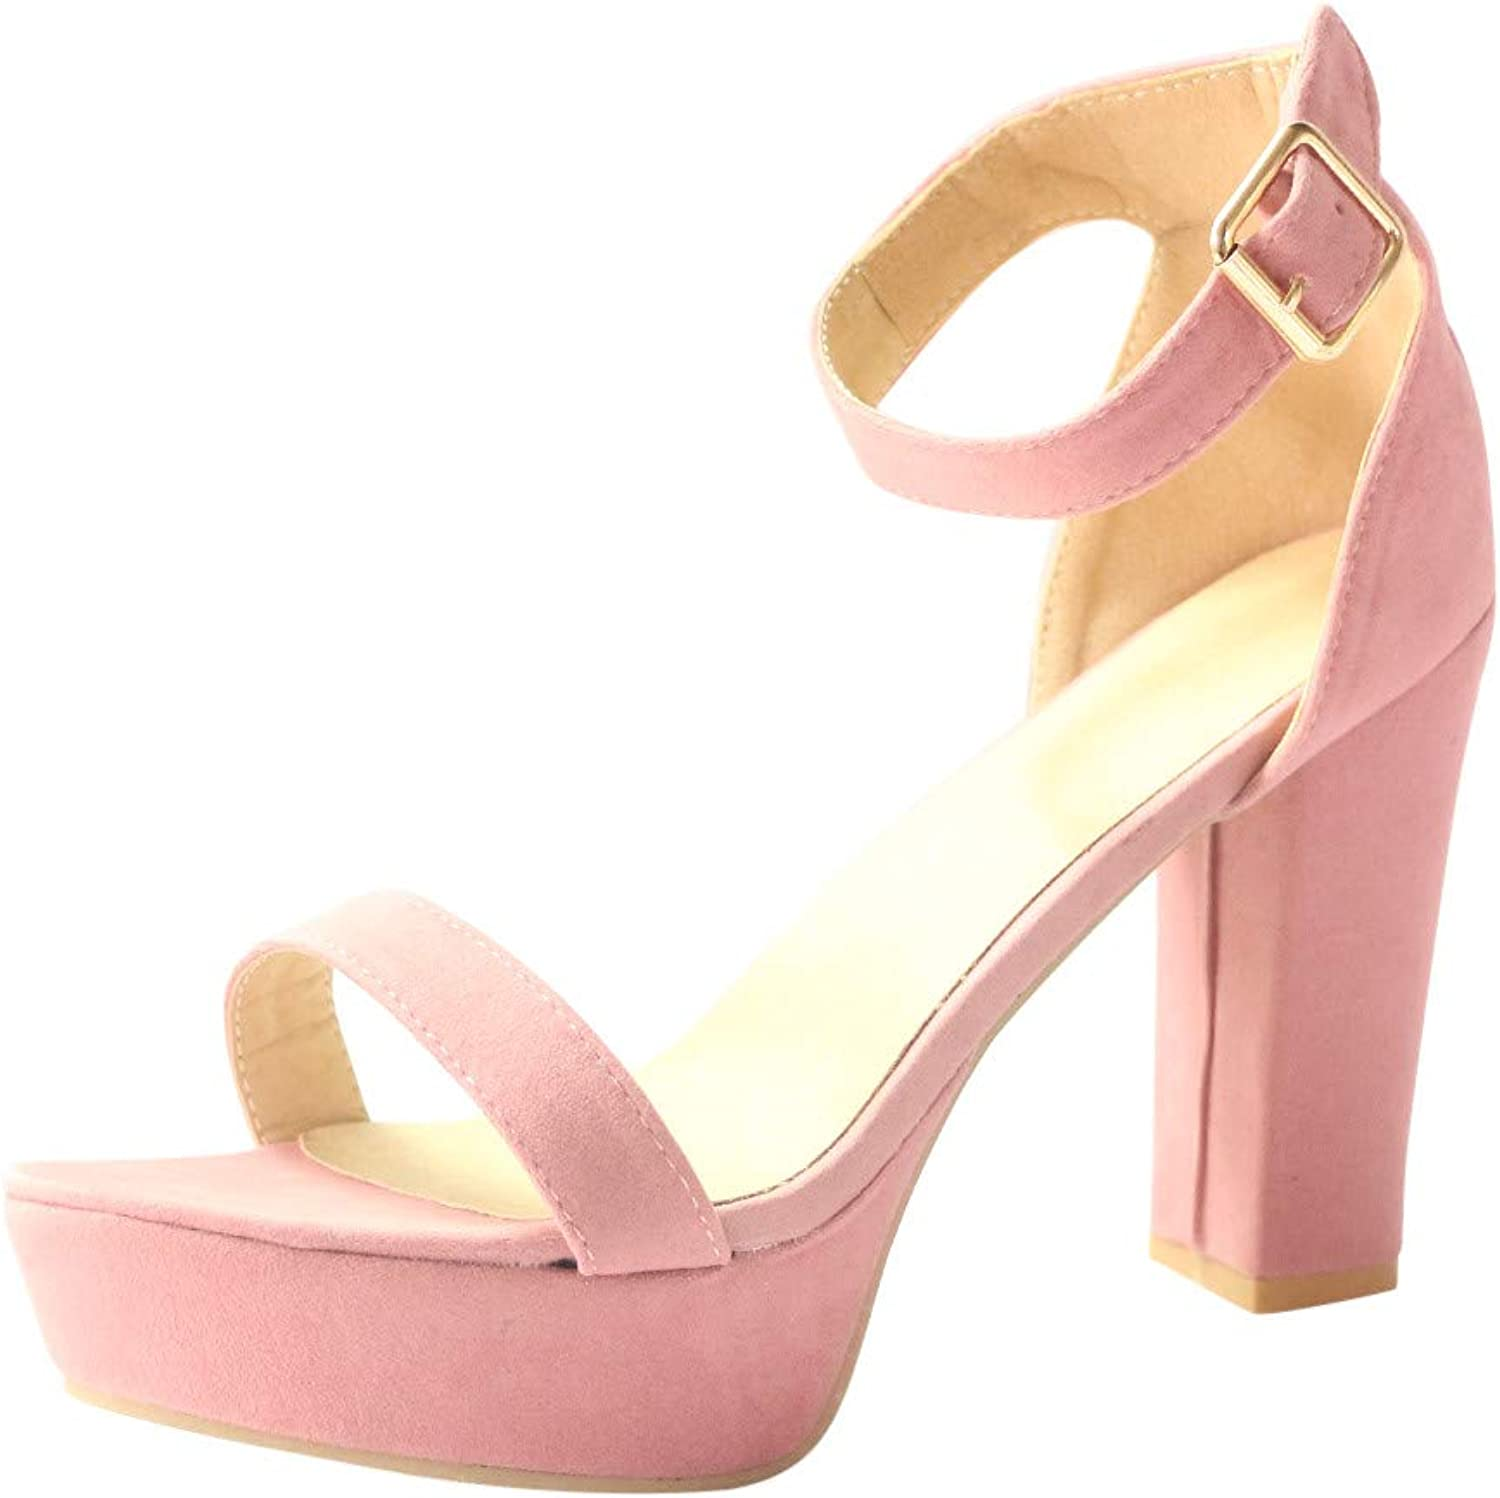 2019 New Wide Width Wedge Sandals for Women Retro Fashion Pumps Open Toe Buckle Strap High Heel shoes Roman Sandals